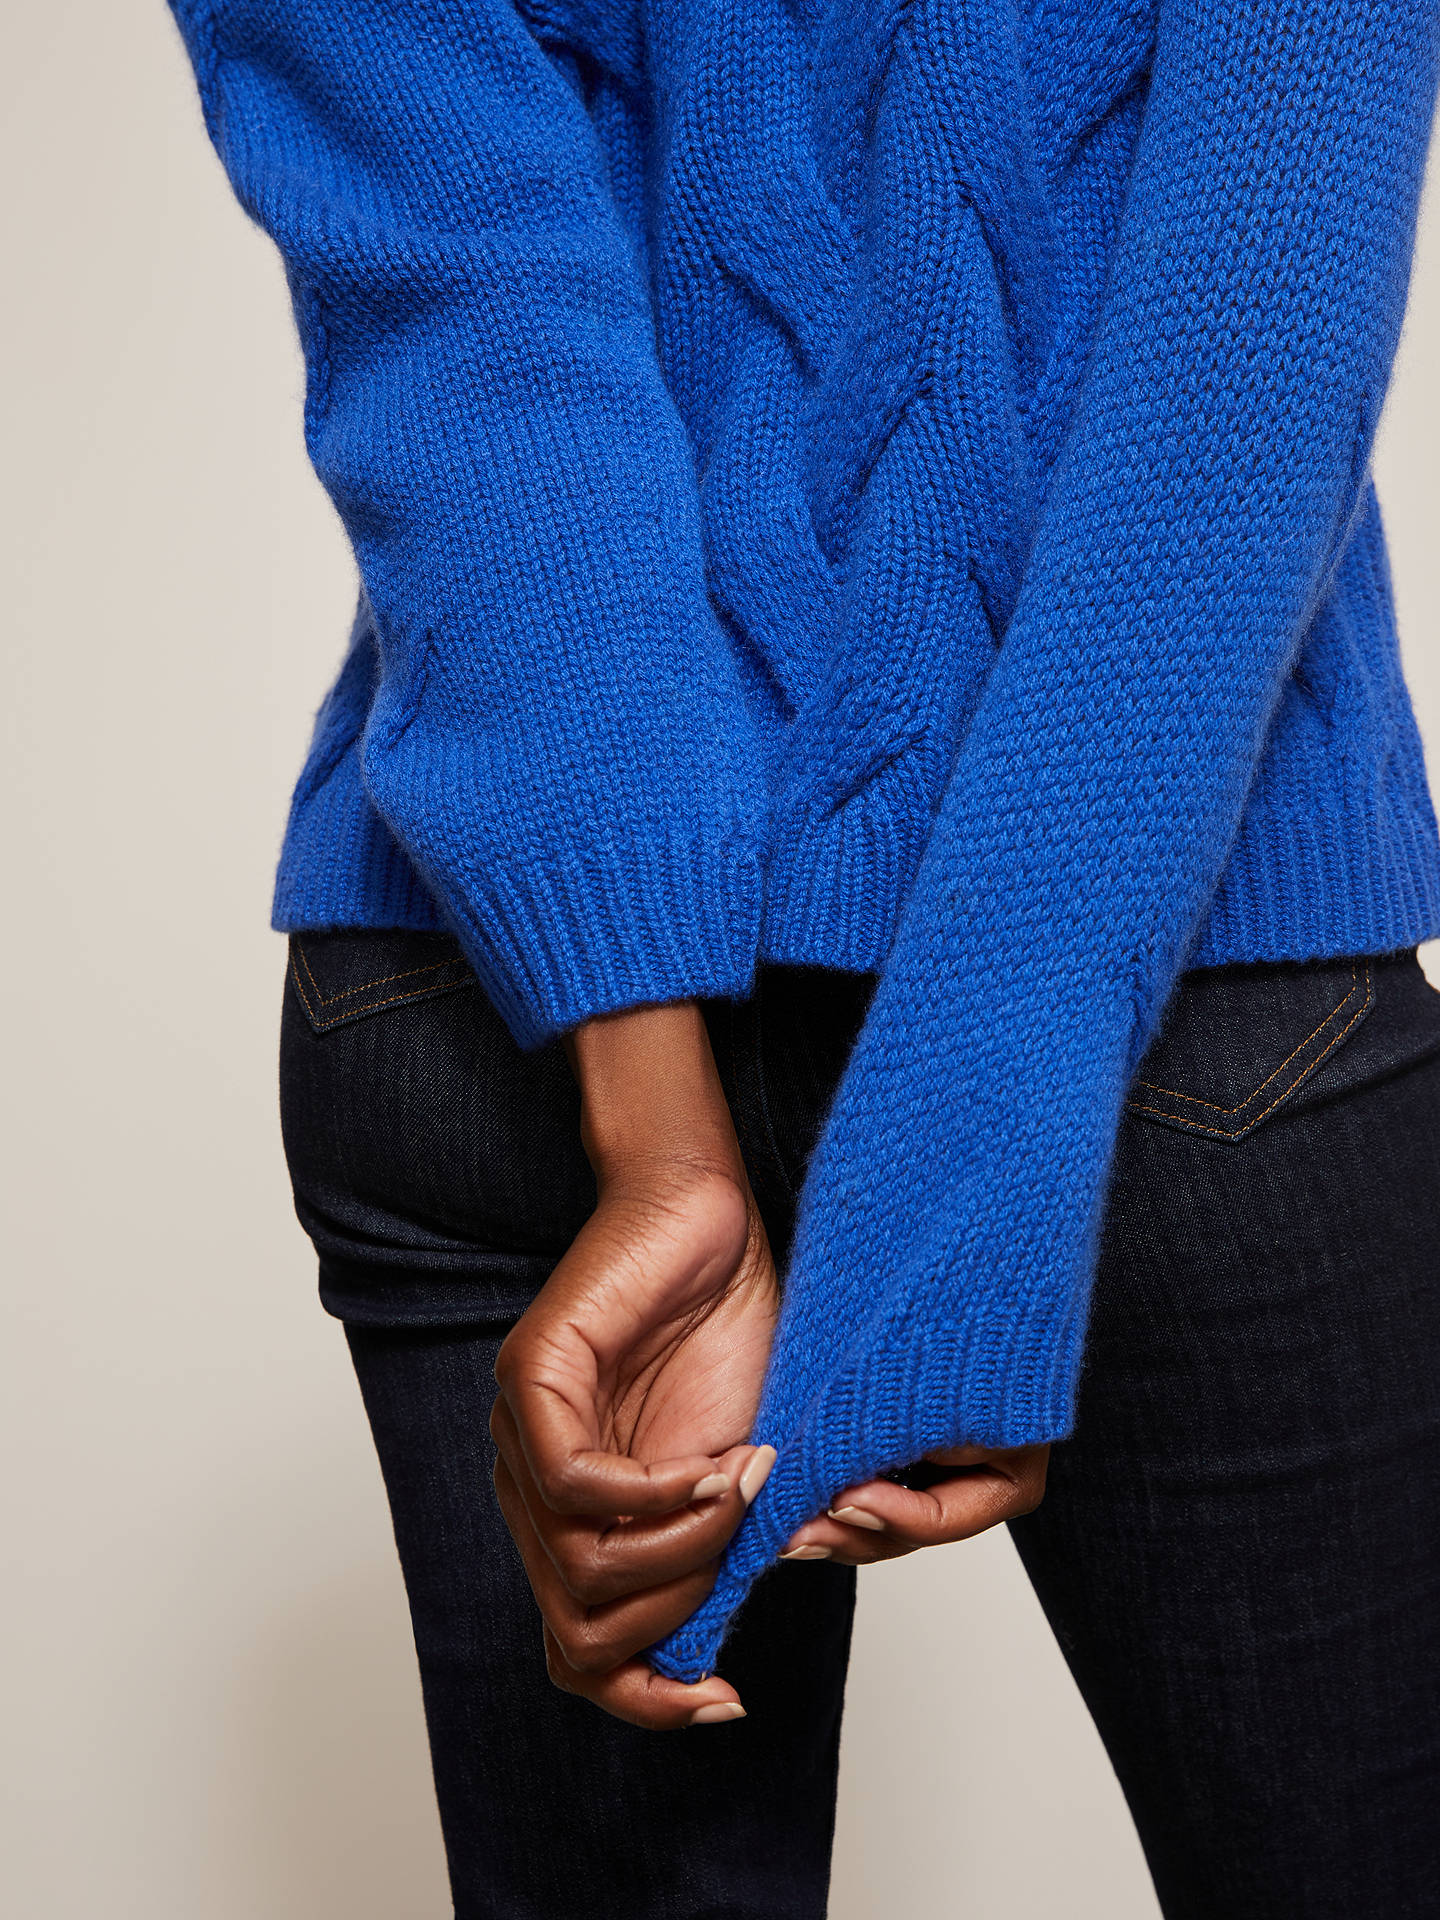 Buy John Lewis & Partners Cashmere Cable Turtle Neck Jumper, Blue, 14 Online at johnlewis.com